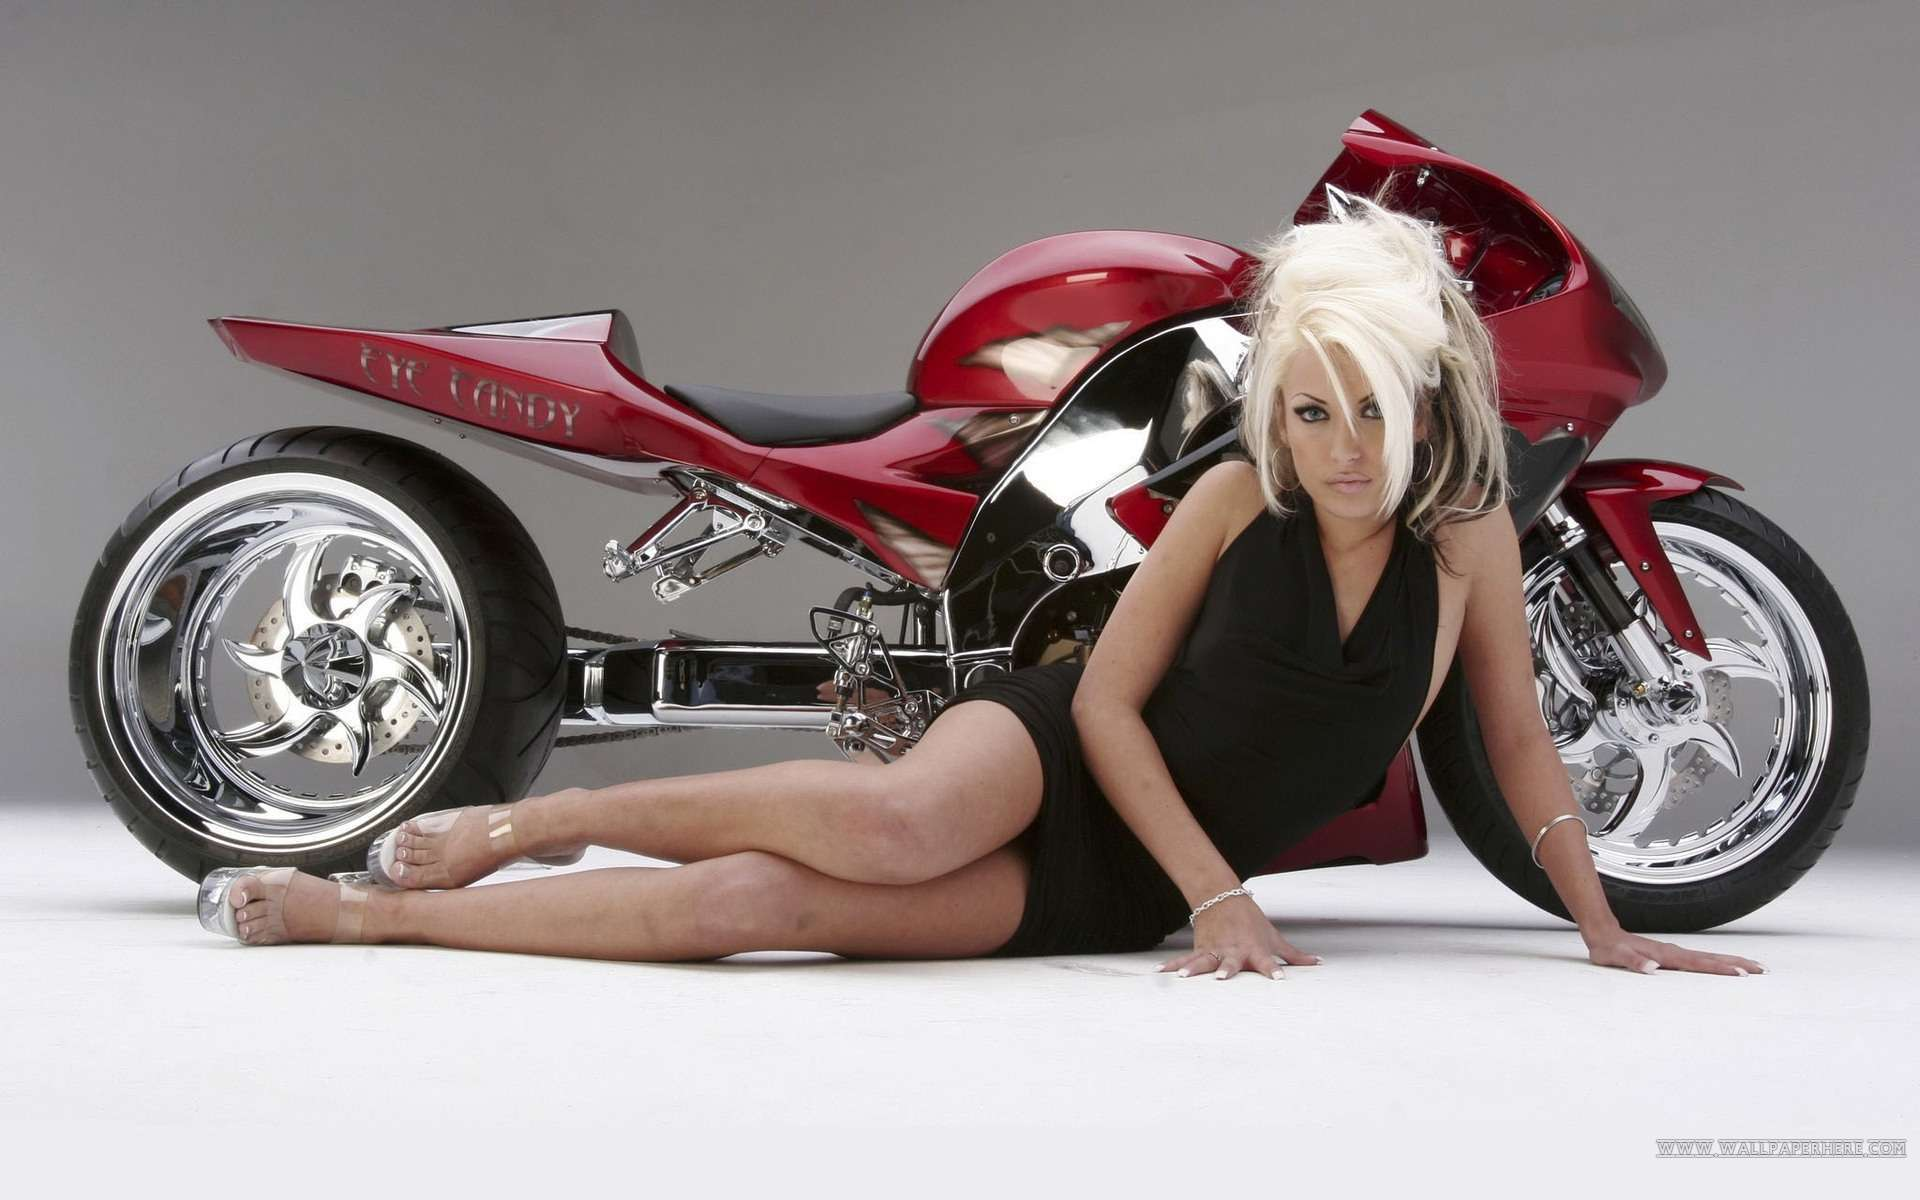 Hot Girls And Motorcycle Wallpaper Wallpapers  Hd Car